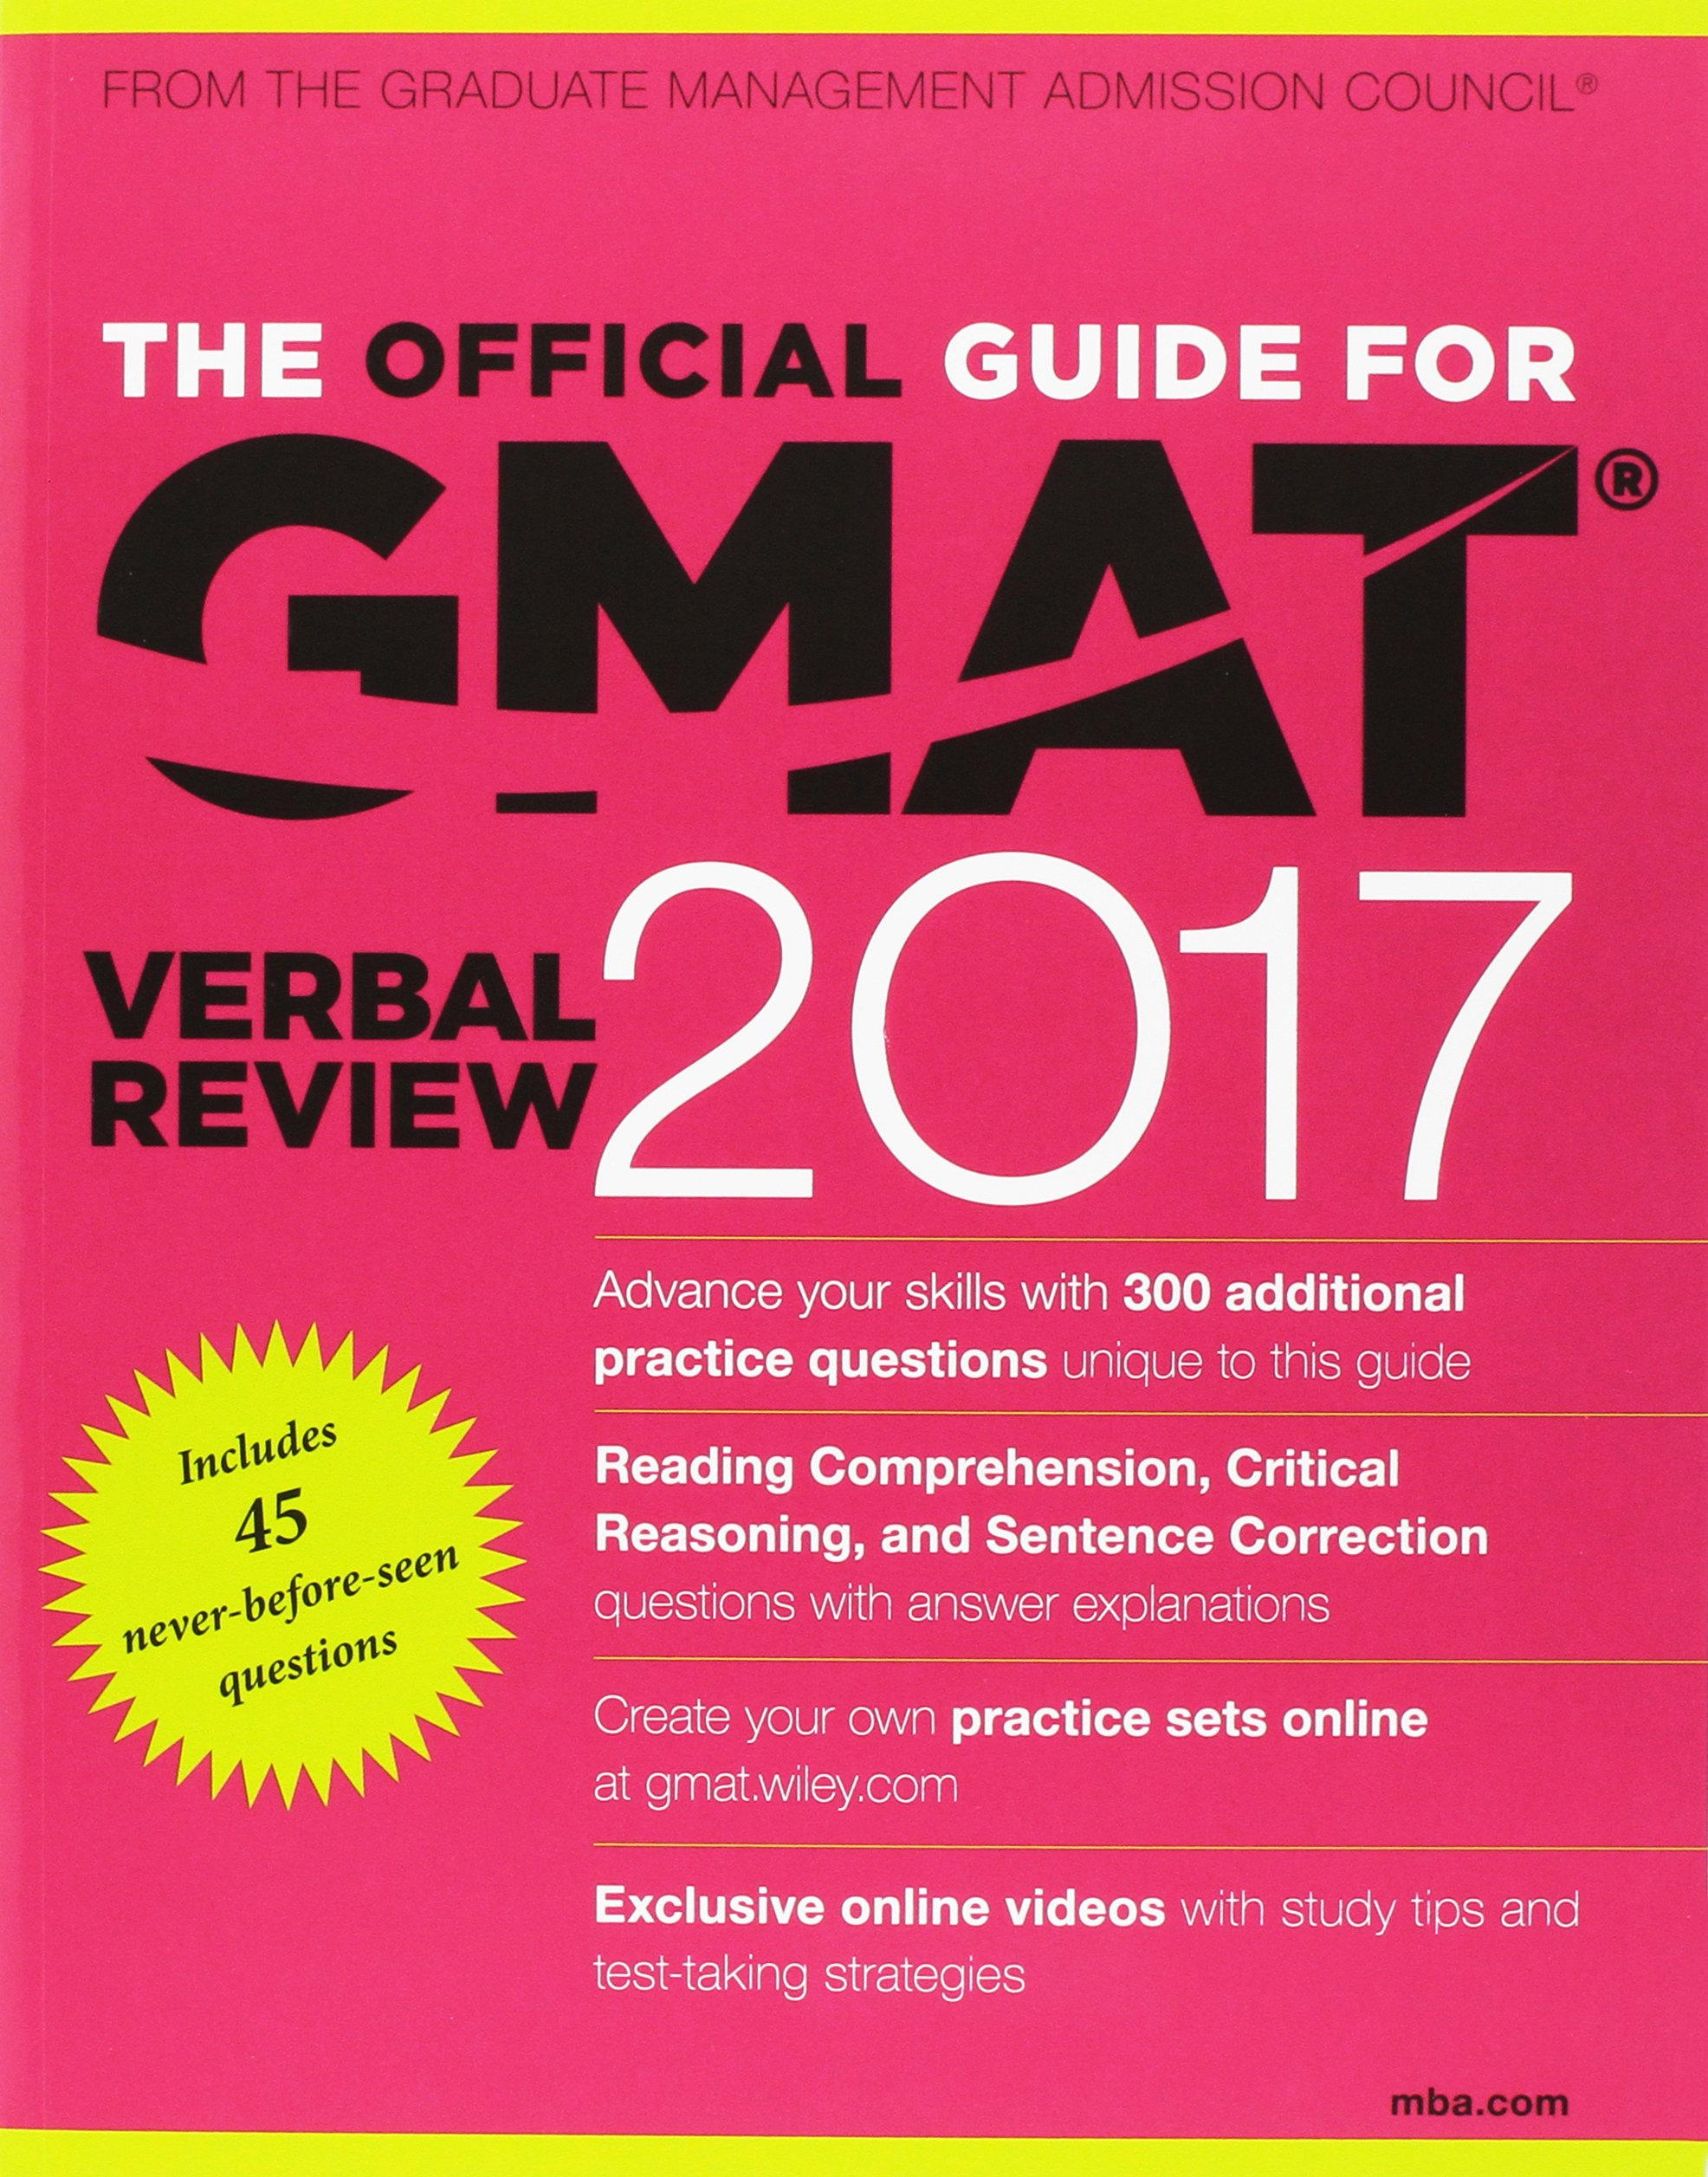 The official guide to the gmat review 2017 bundle question bank the official guide to the gmat review 2017 bundle question bank video gmac graduate management admission council 9781119254683 amazon books fandeluxe Image collections